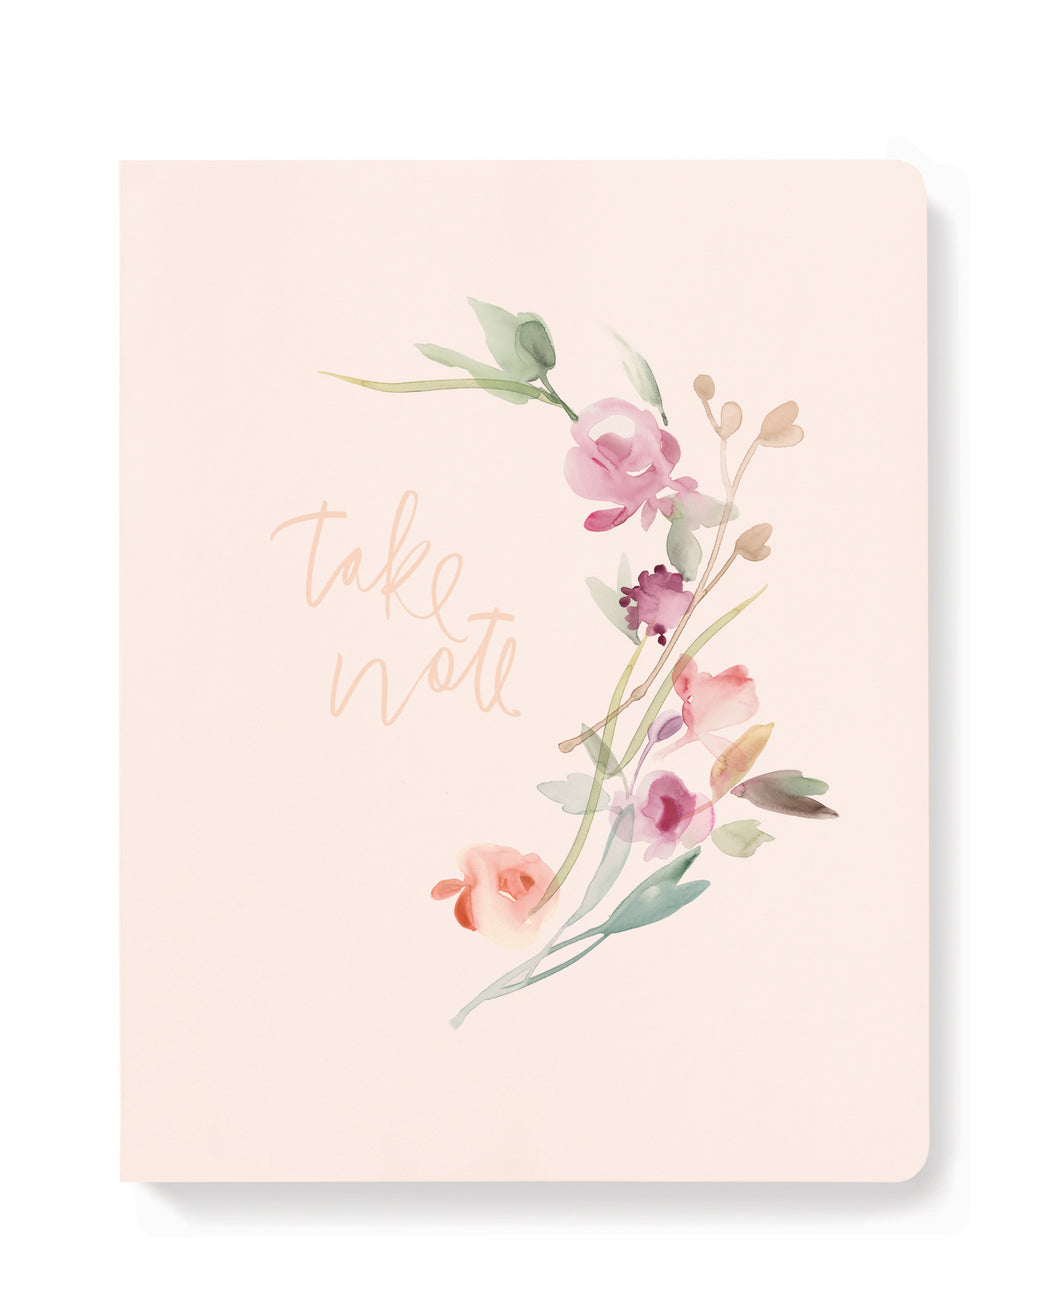 FRINGE STUDIO TAKE NOTE FLORAL JOURNAL